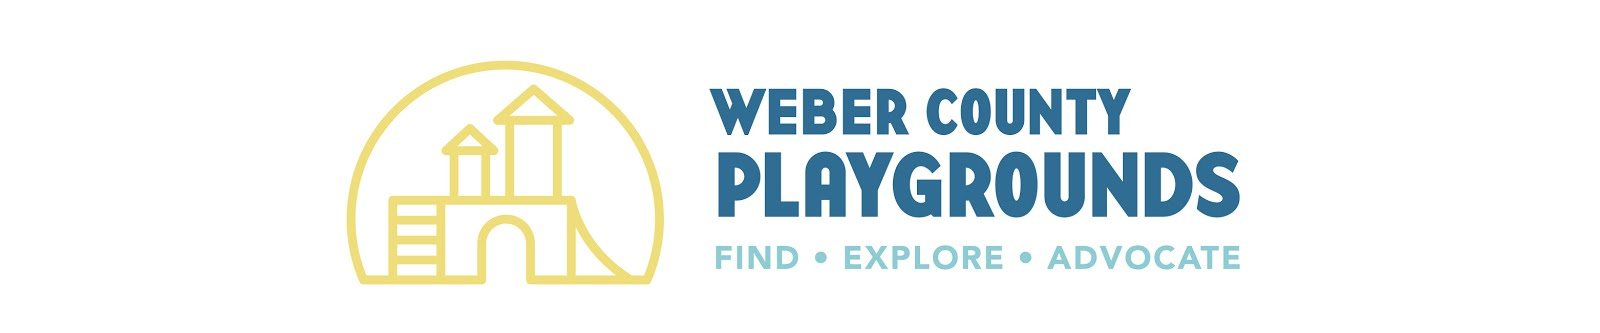 Weber County Playgrounds